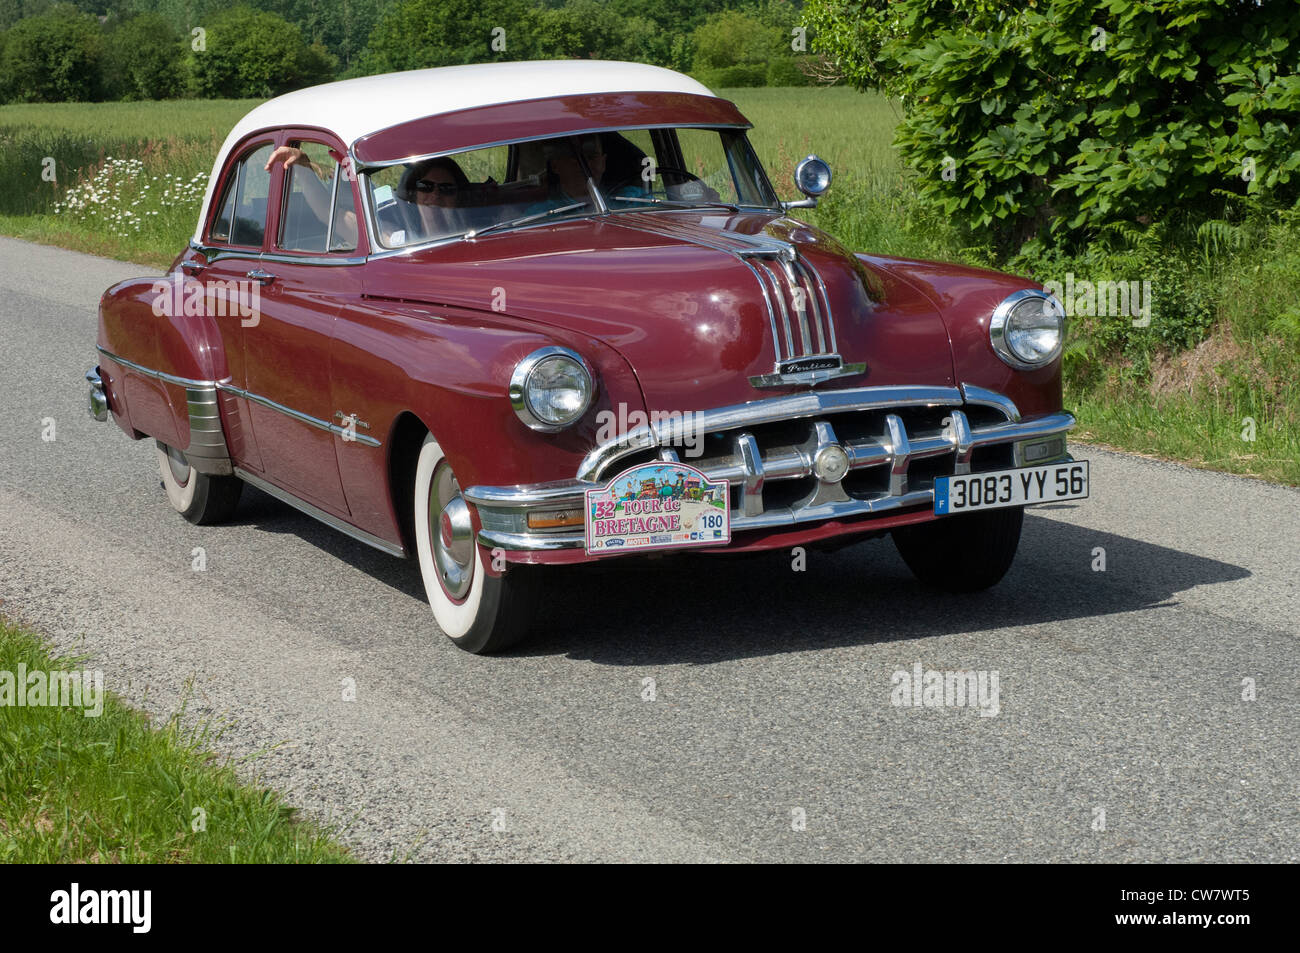 Pontiac 1950 High Resolution Stock Photography And Images Alamy